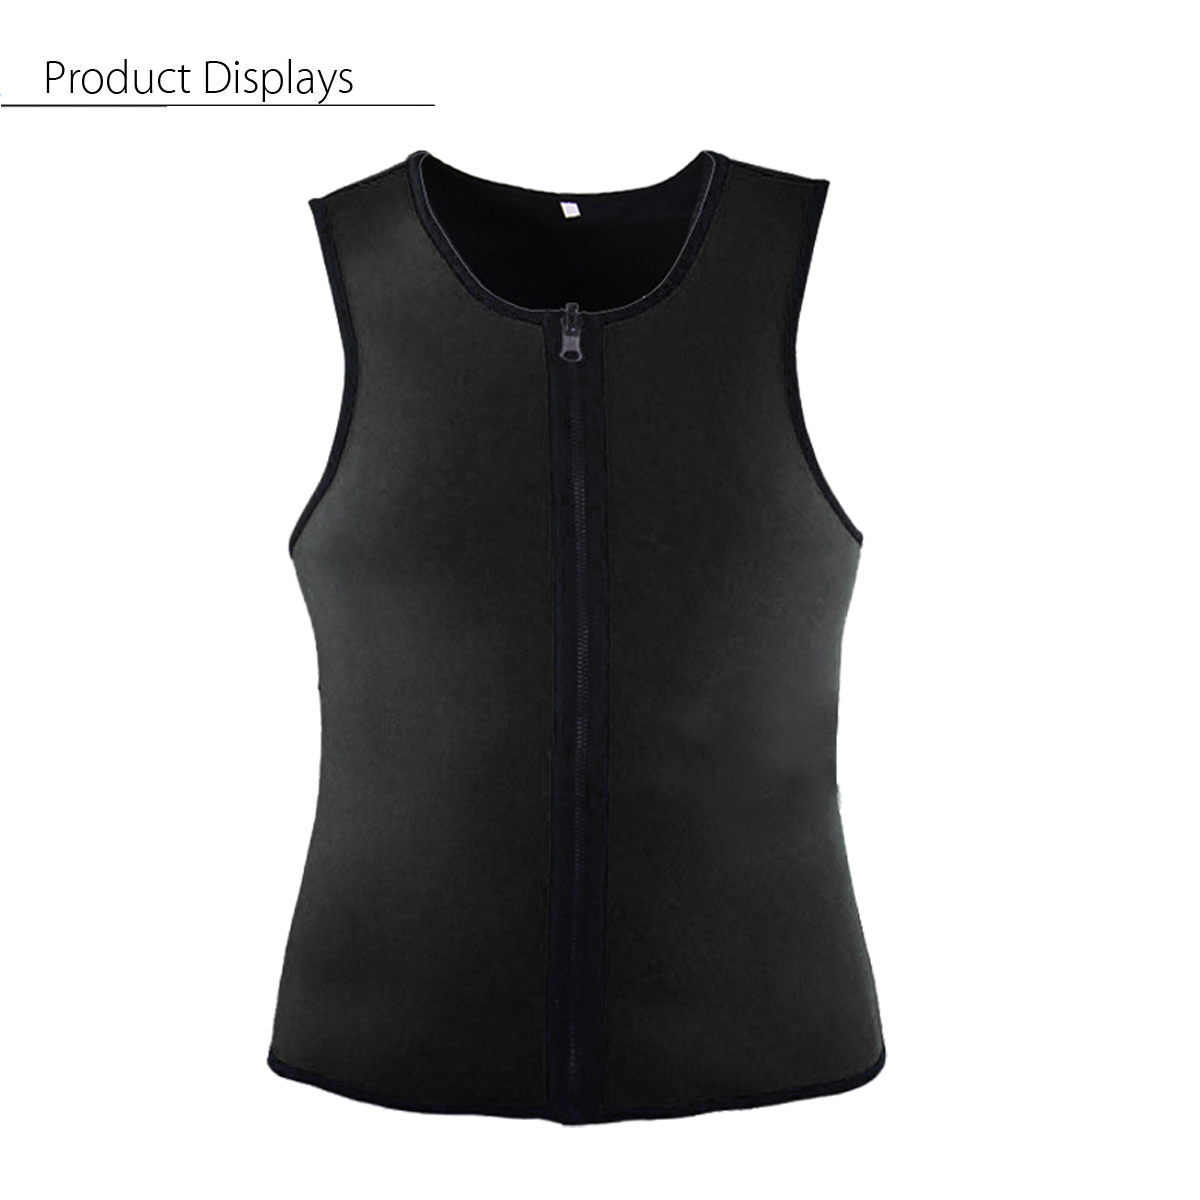 Black Men Slimming Vest Body Shaper Belly Wrap Abdomen Weight Loss Zipper Sauna Corset Shapewear